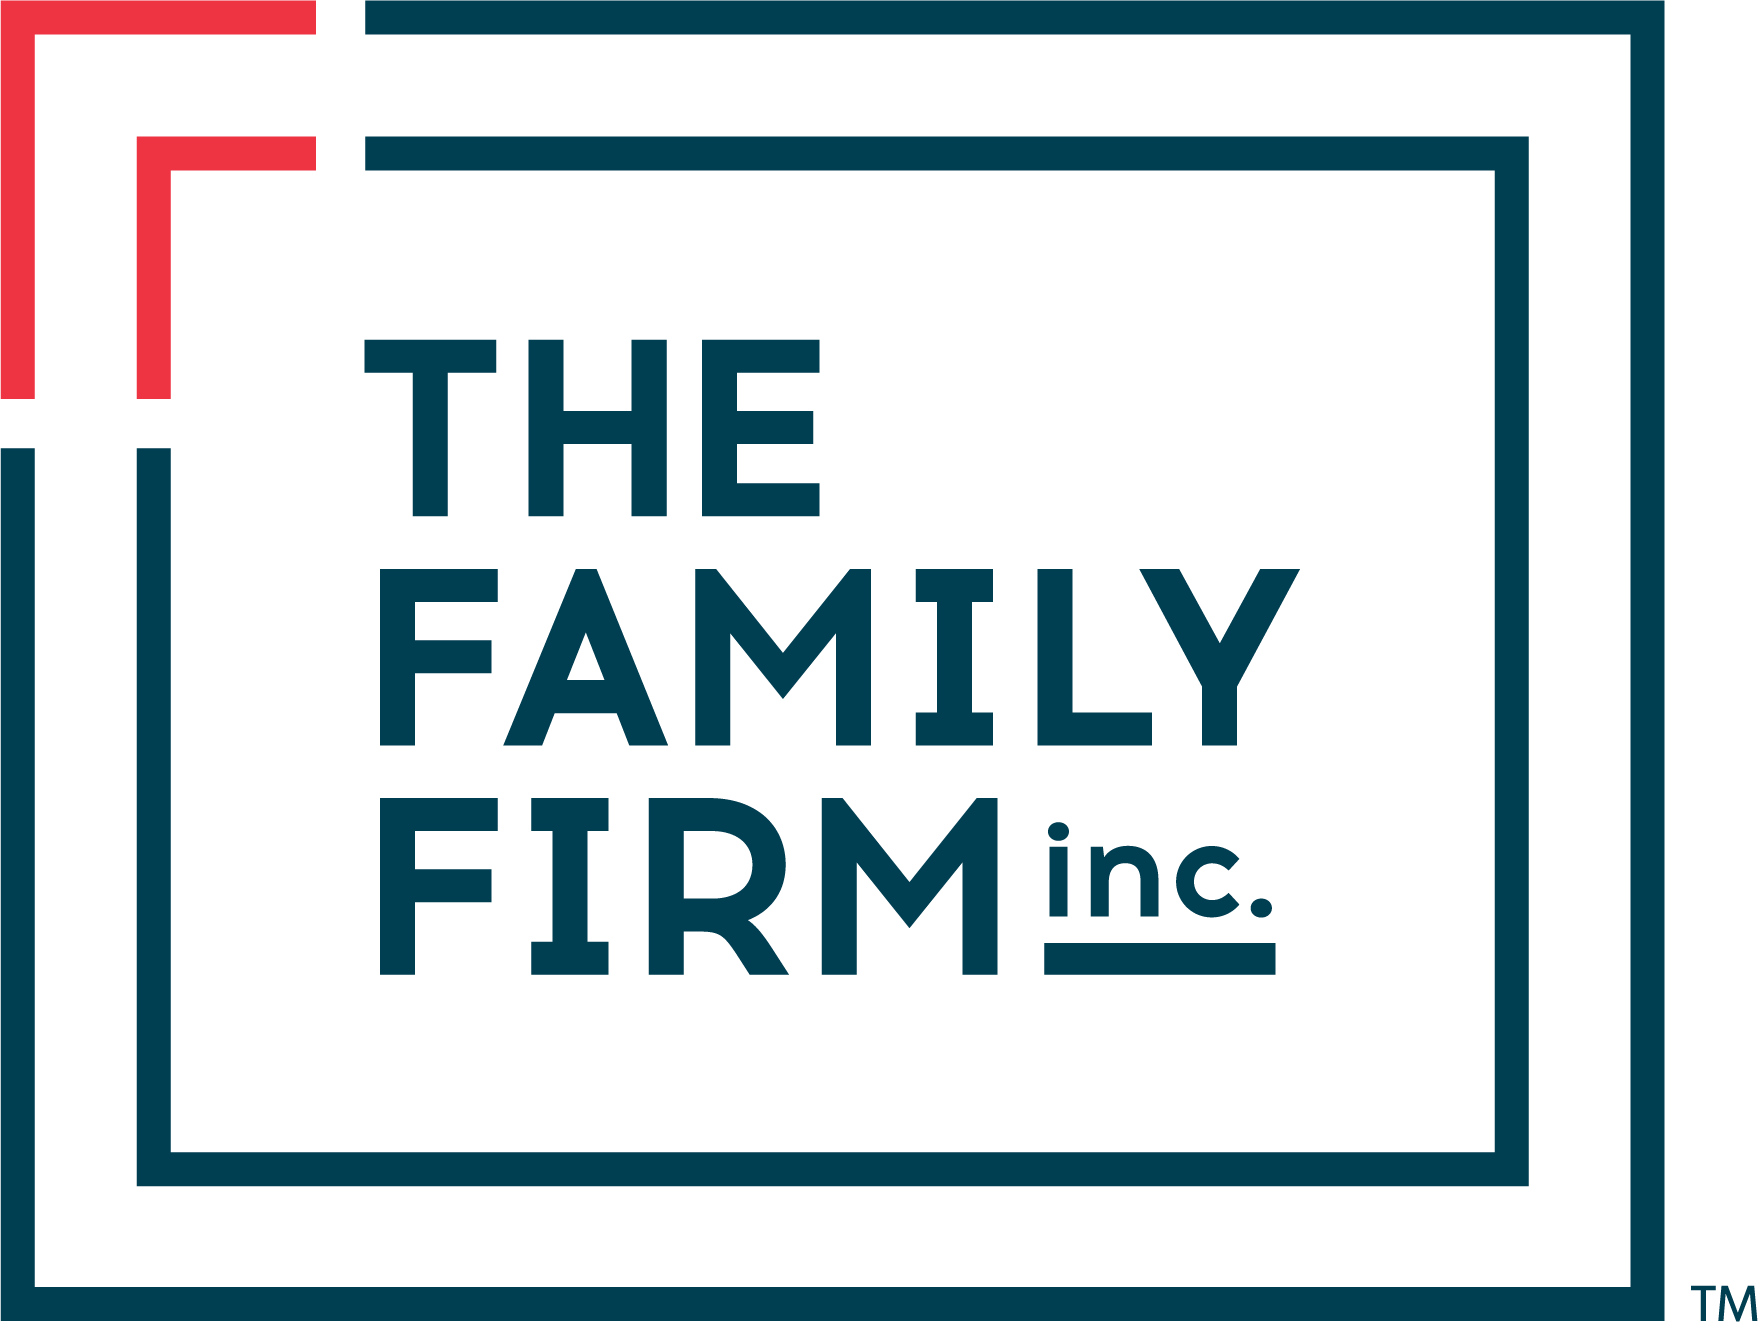 The Family Firm Inc.